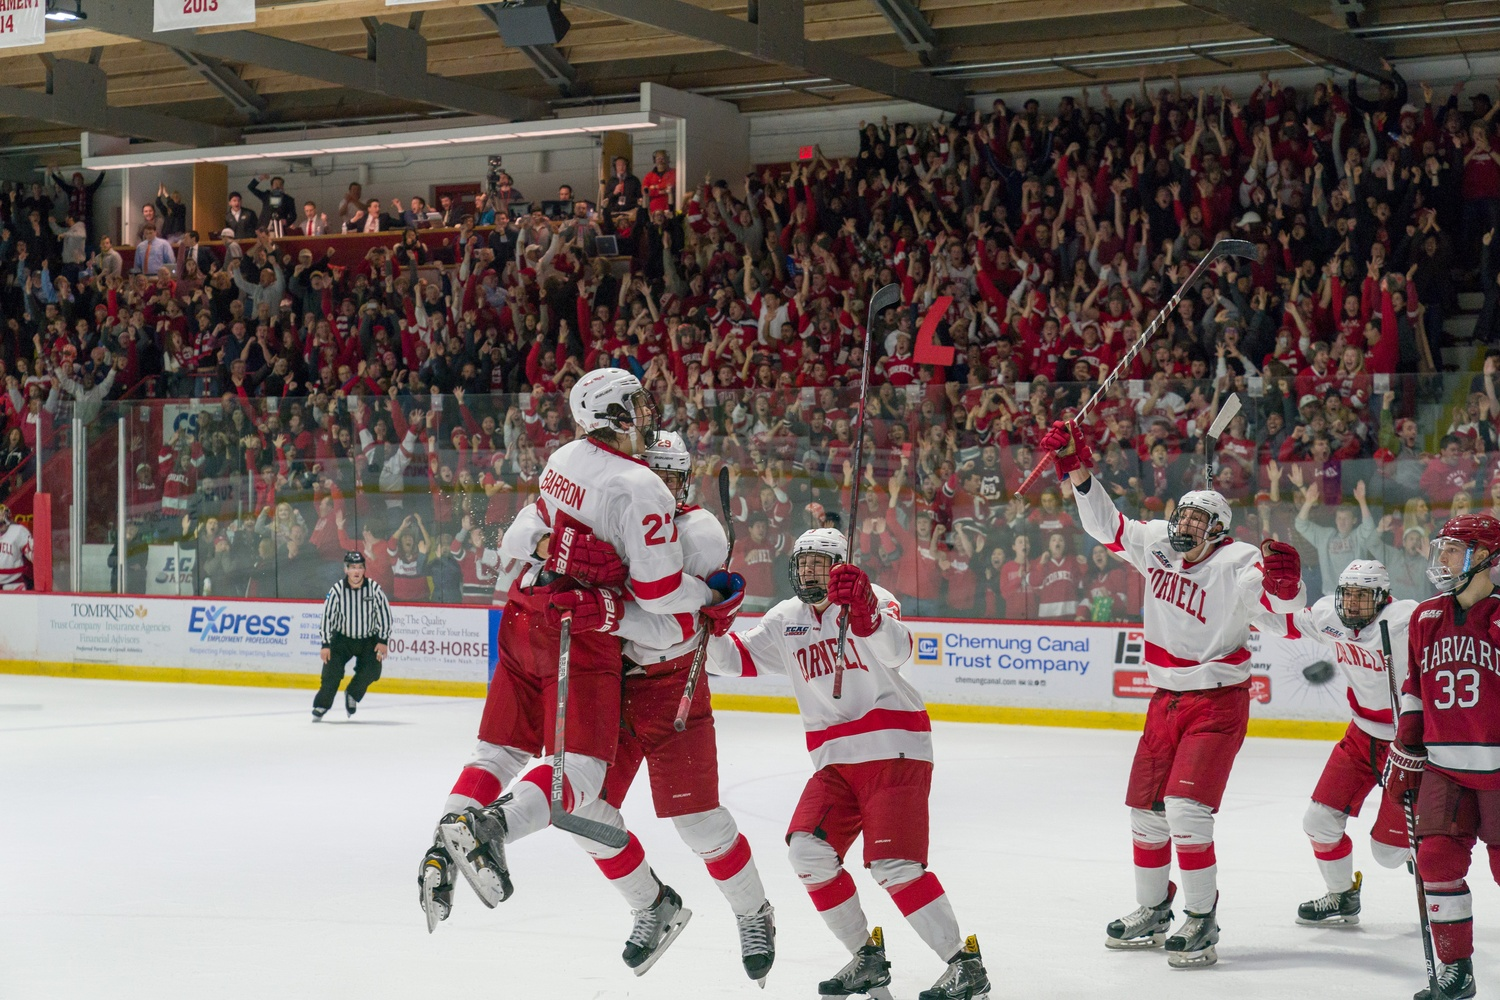 Lynah Rink in Ithaca, N.Y., is never a hospitable venue for the Crimson, who were victims of both a crushing loss and flying fish.